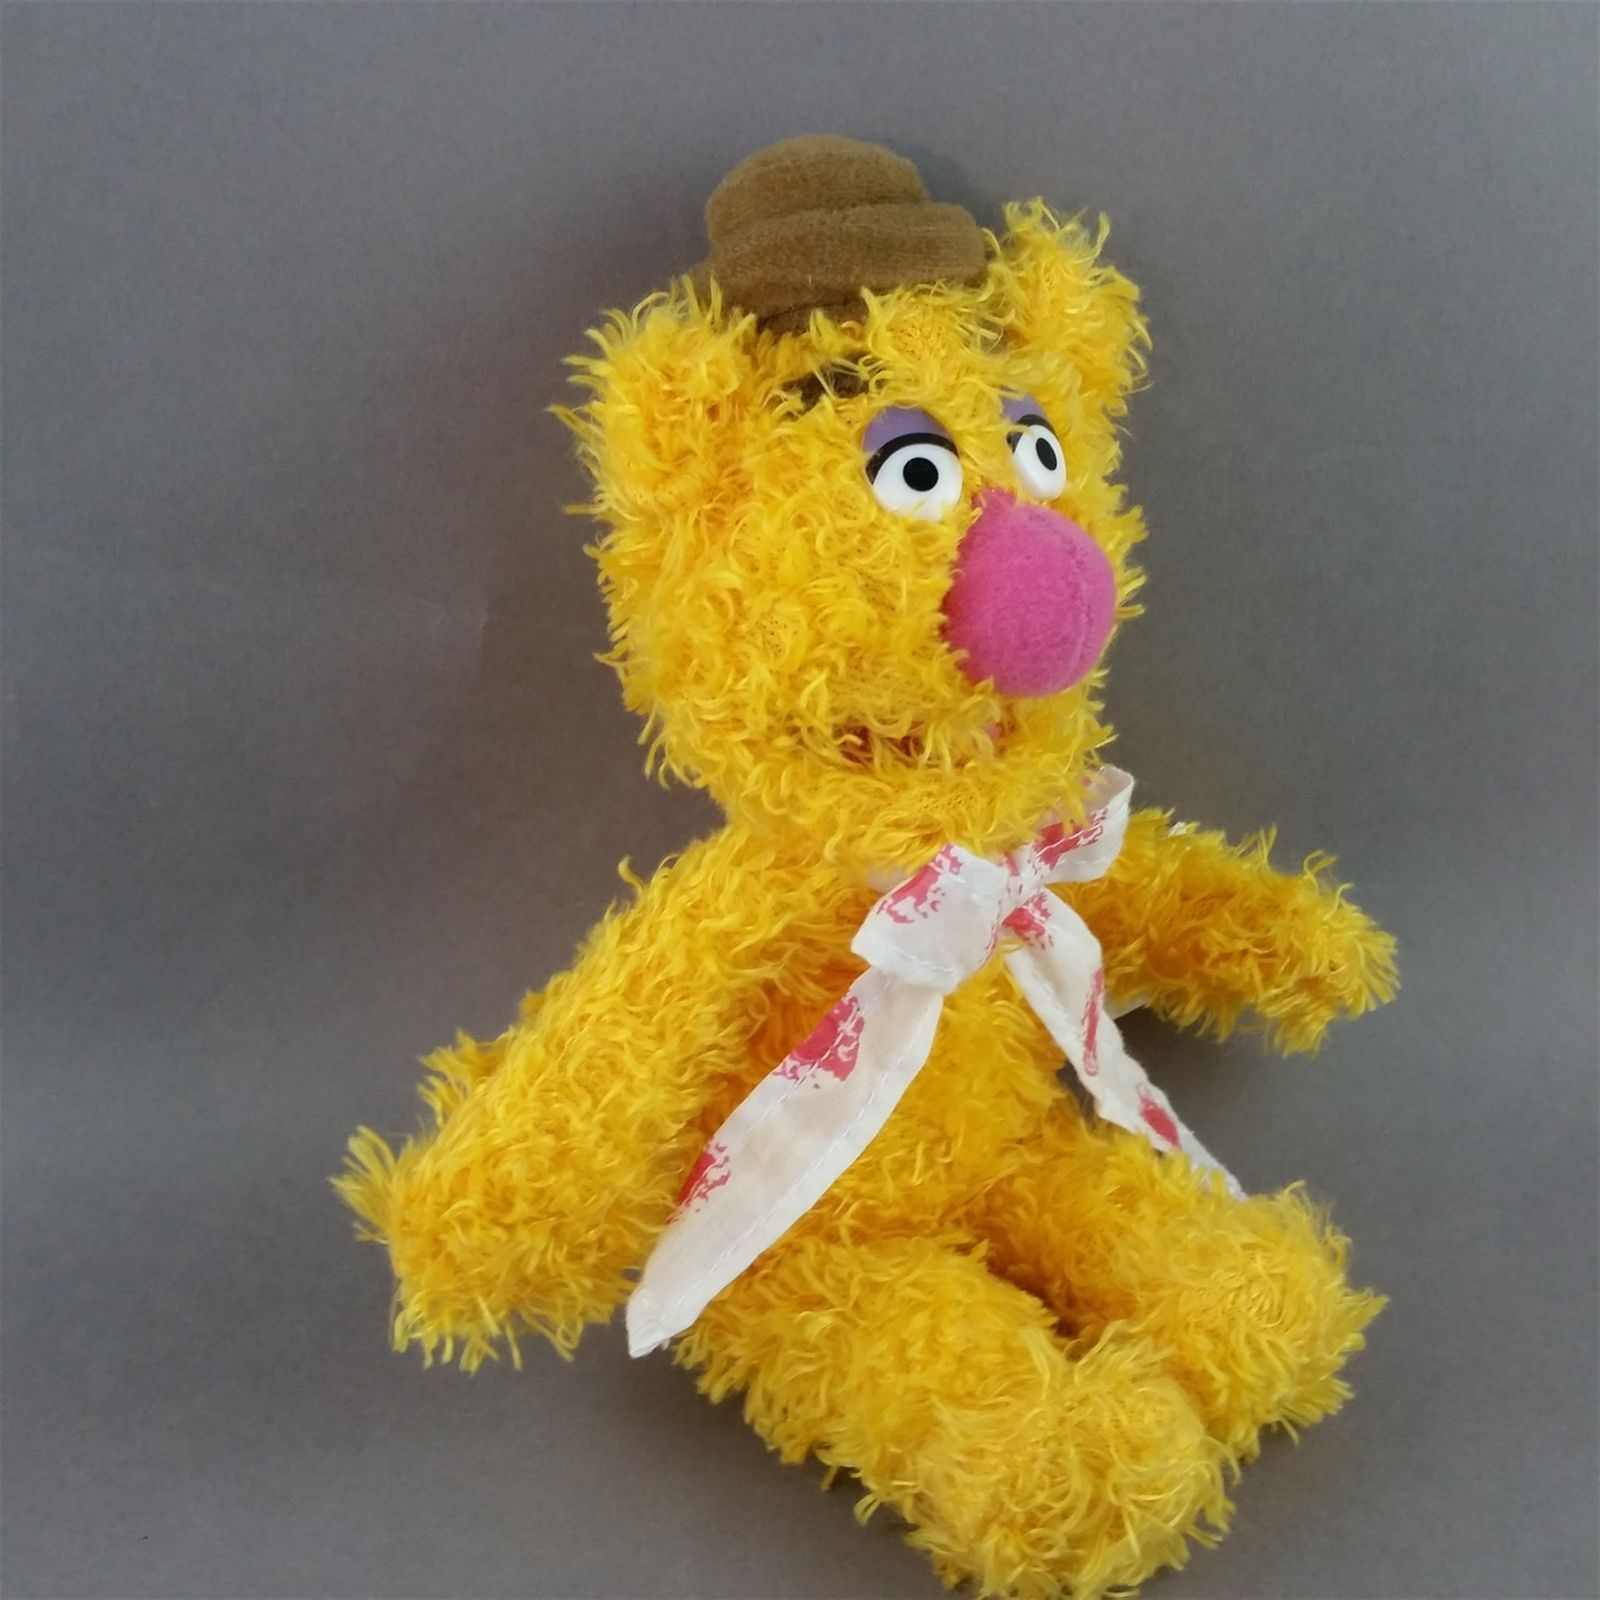 Fozzie Bear Plush Bean Bag Doll Muppets Sababa Toy 8 inch